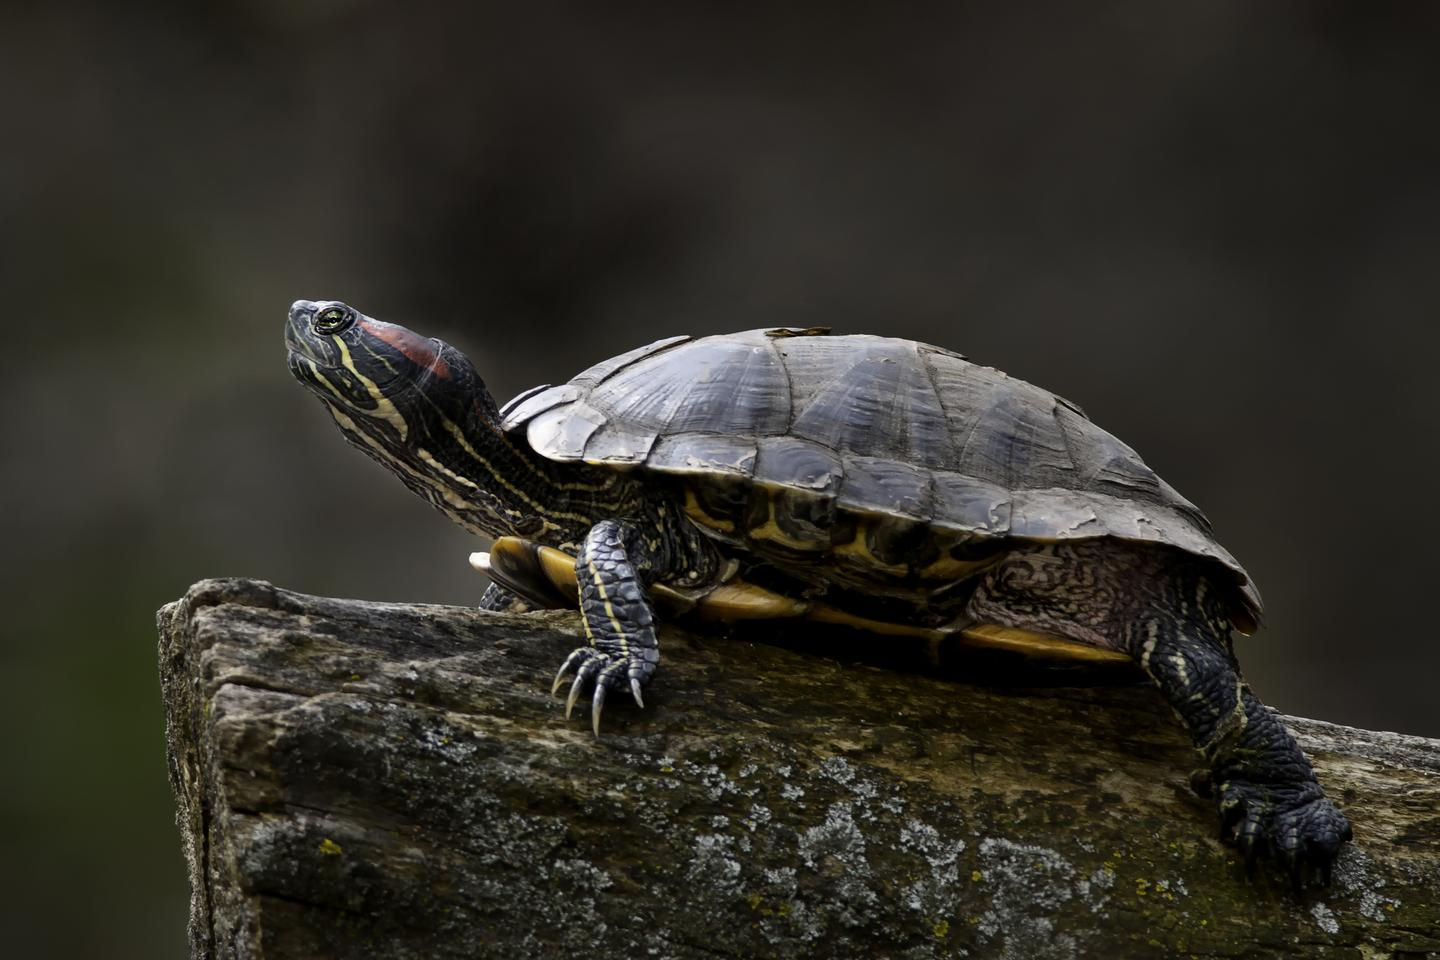 Researchers have been able to non-invasively control the walking paths of red-eared sliders (Photo: Shutterstock)